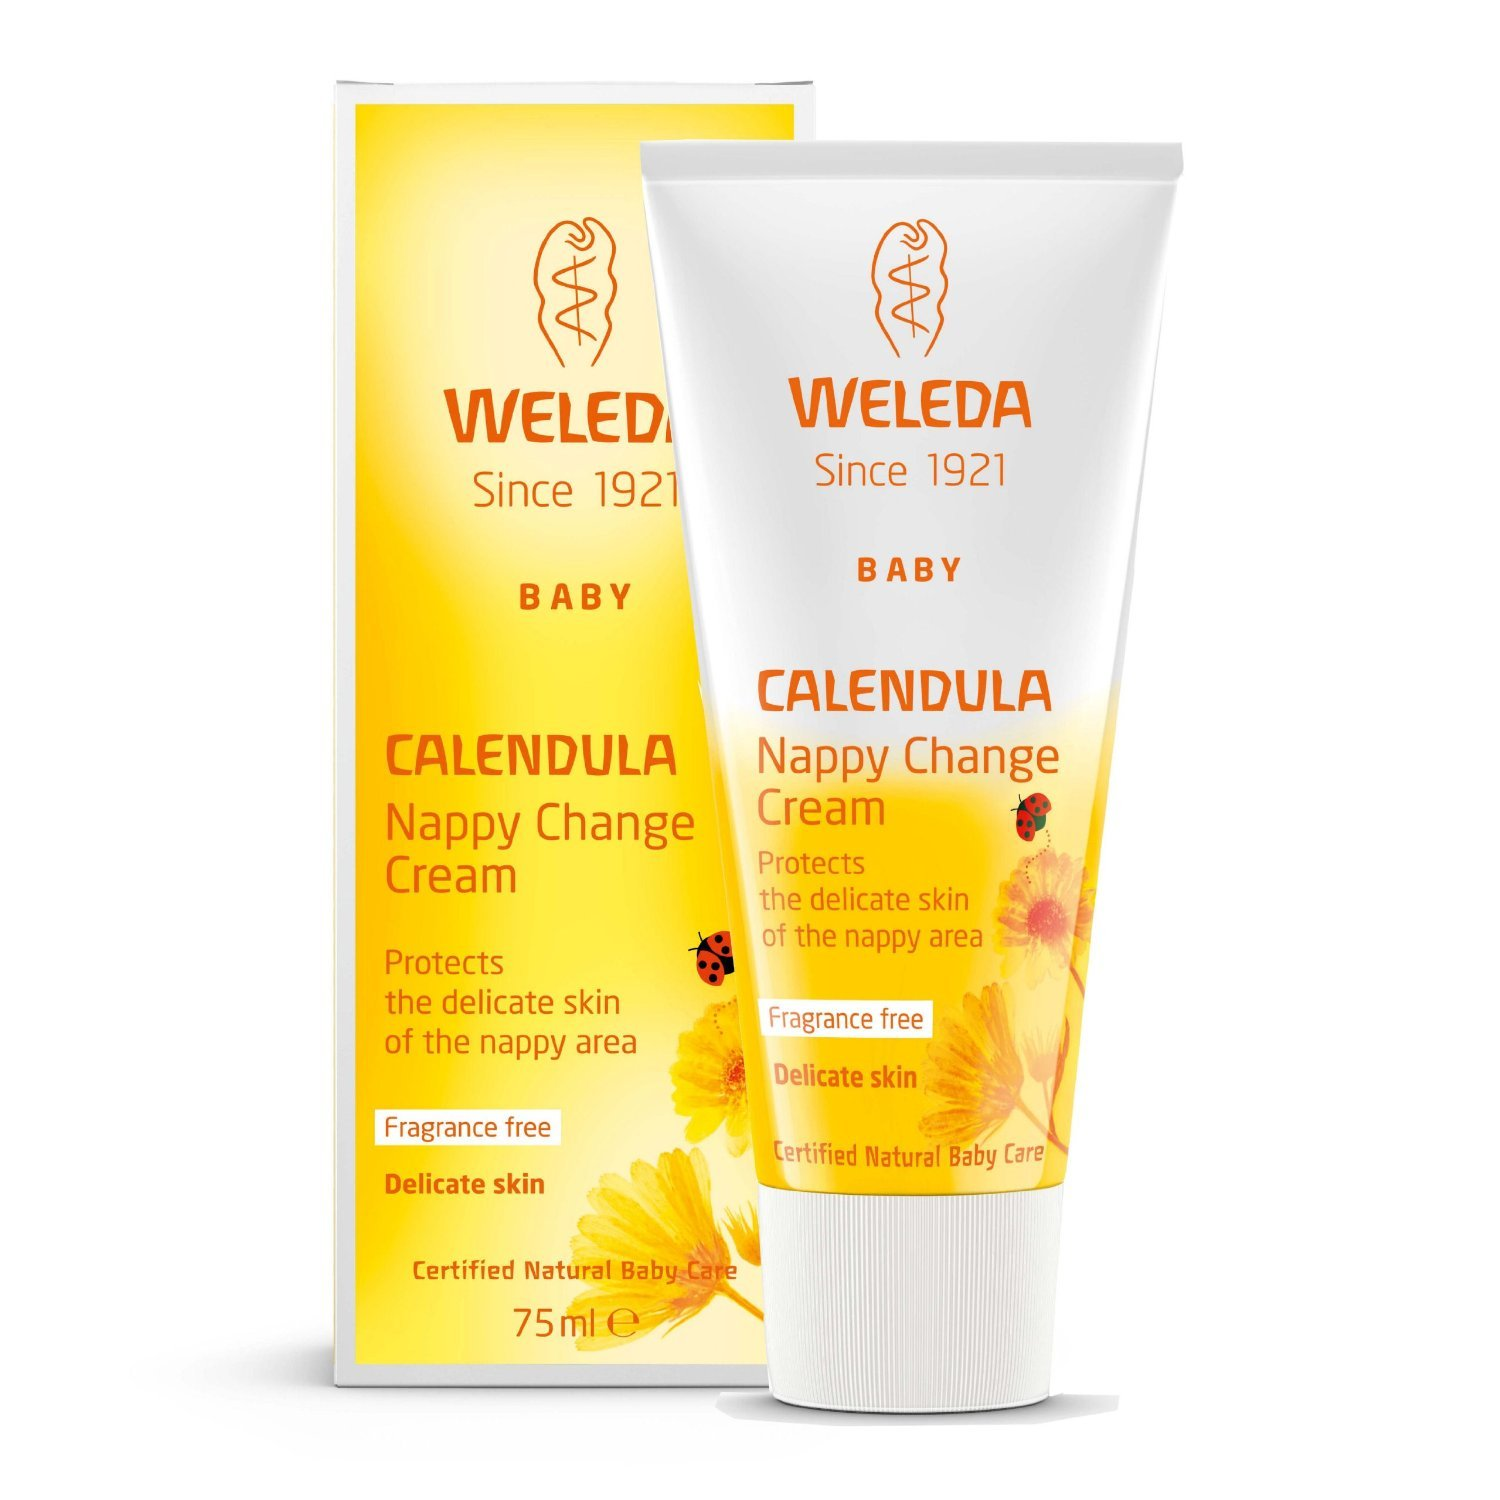 (2 Pack) - Weleda - Calendula Nappy Cream | 75ml | 2 PACK BUNDLE